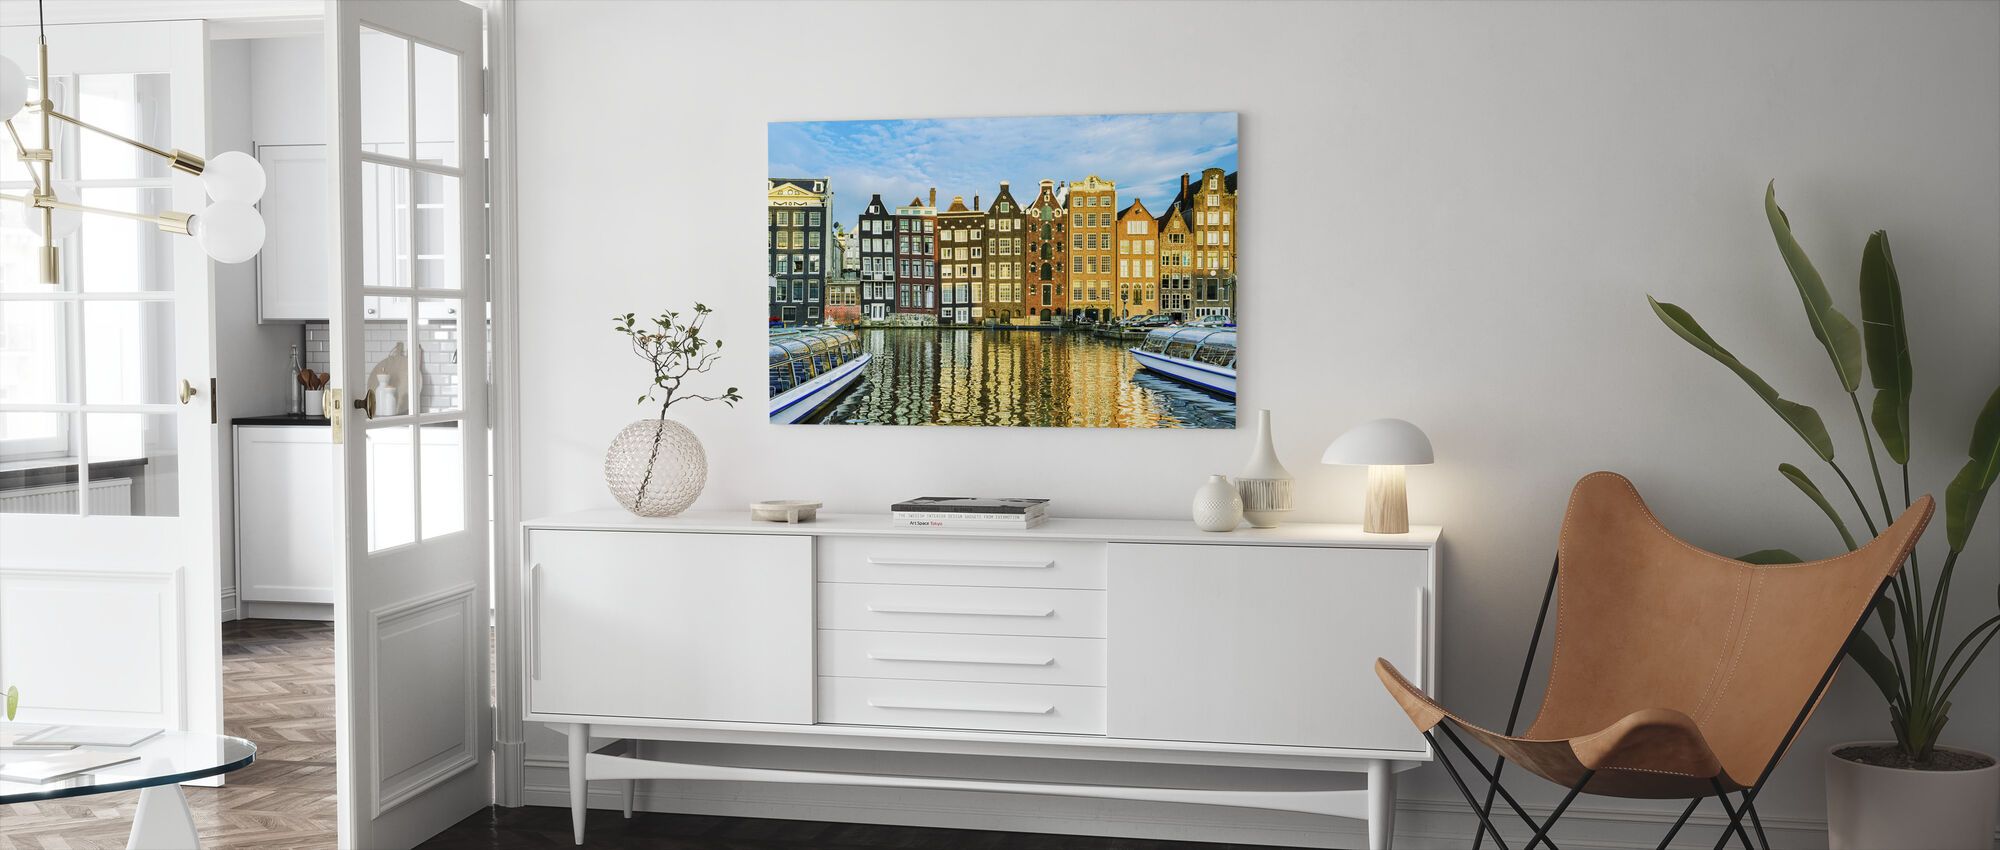 Traditional Houses of Amsterdam, Netherlands - Canvas print - Living Room